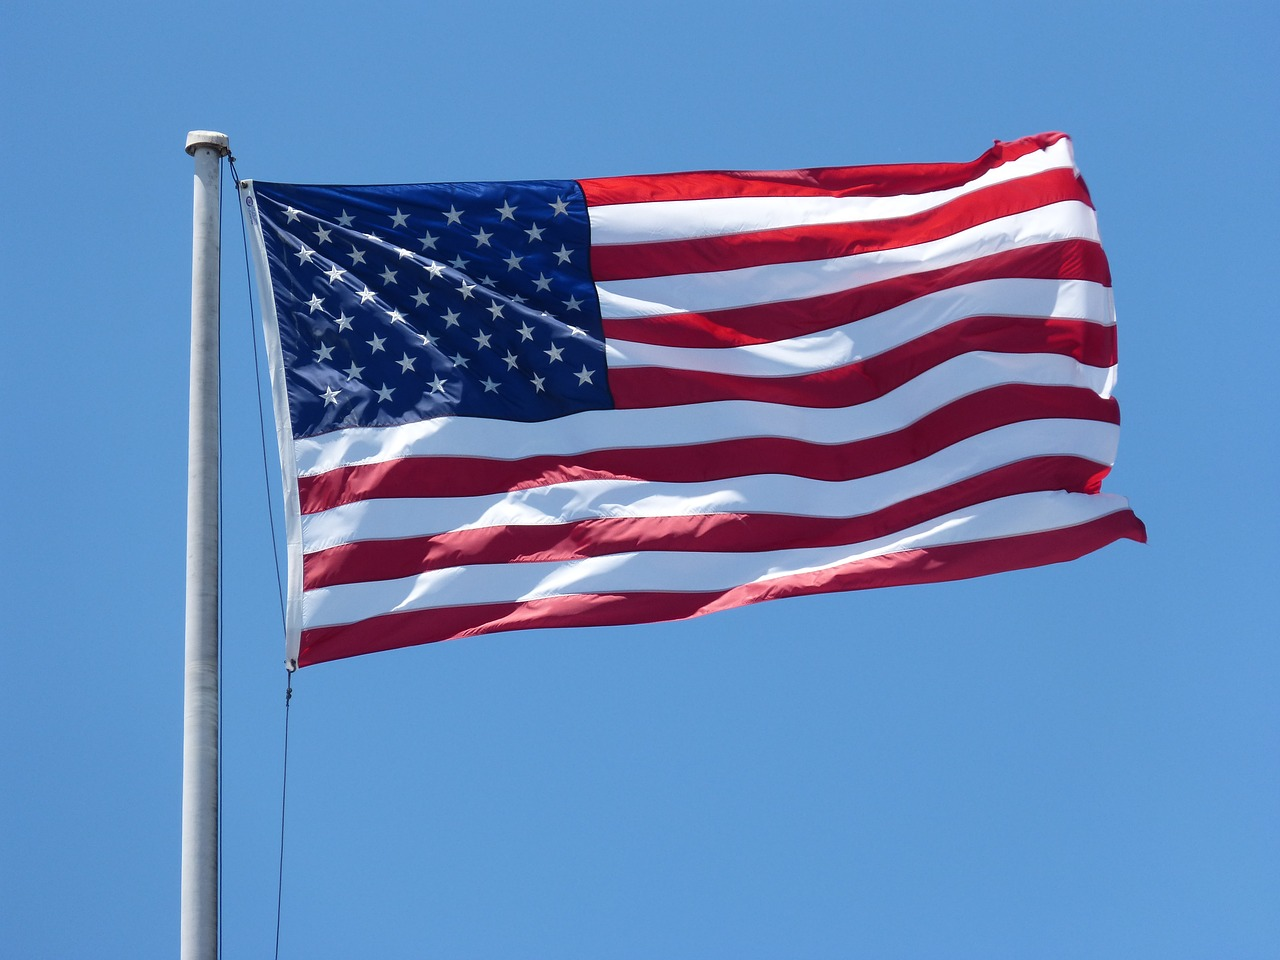 Image of an American flag blowing in the breeze